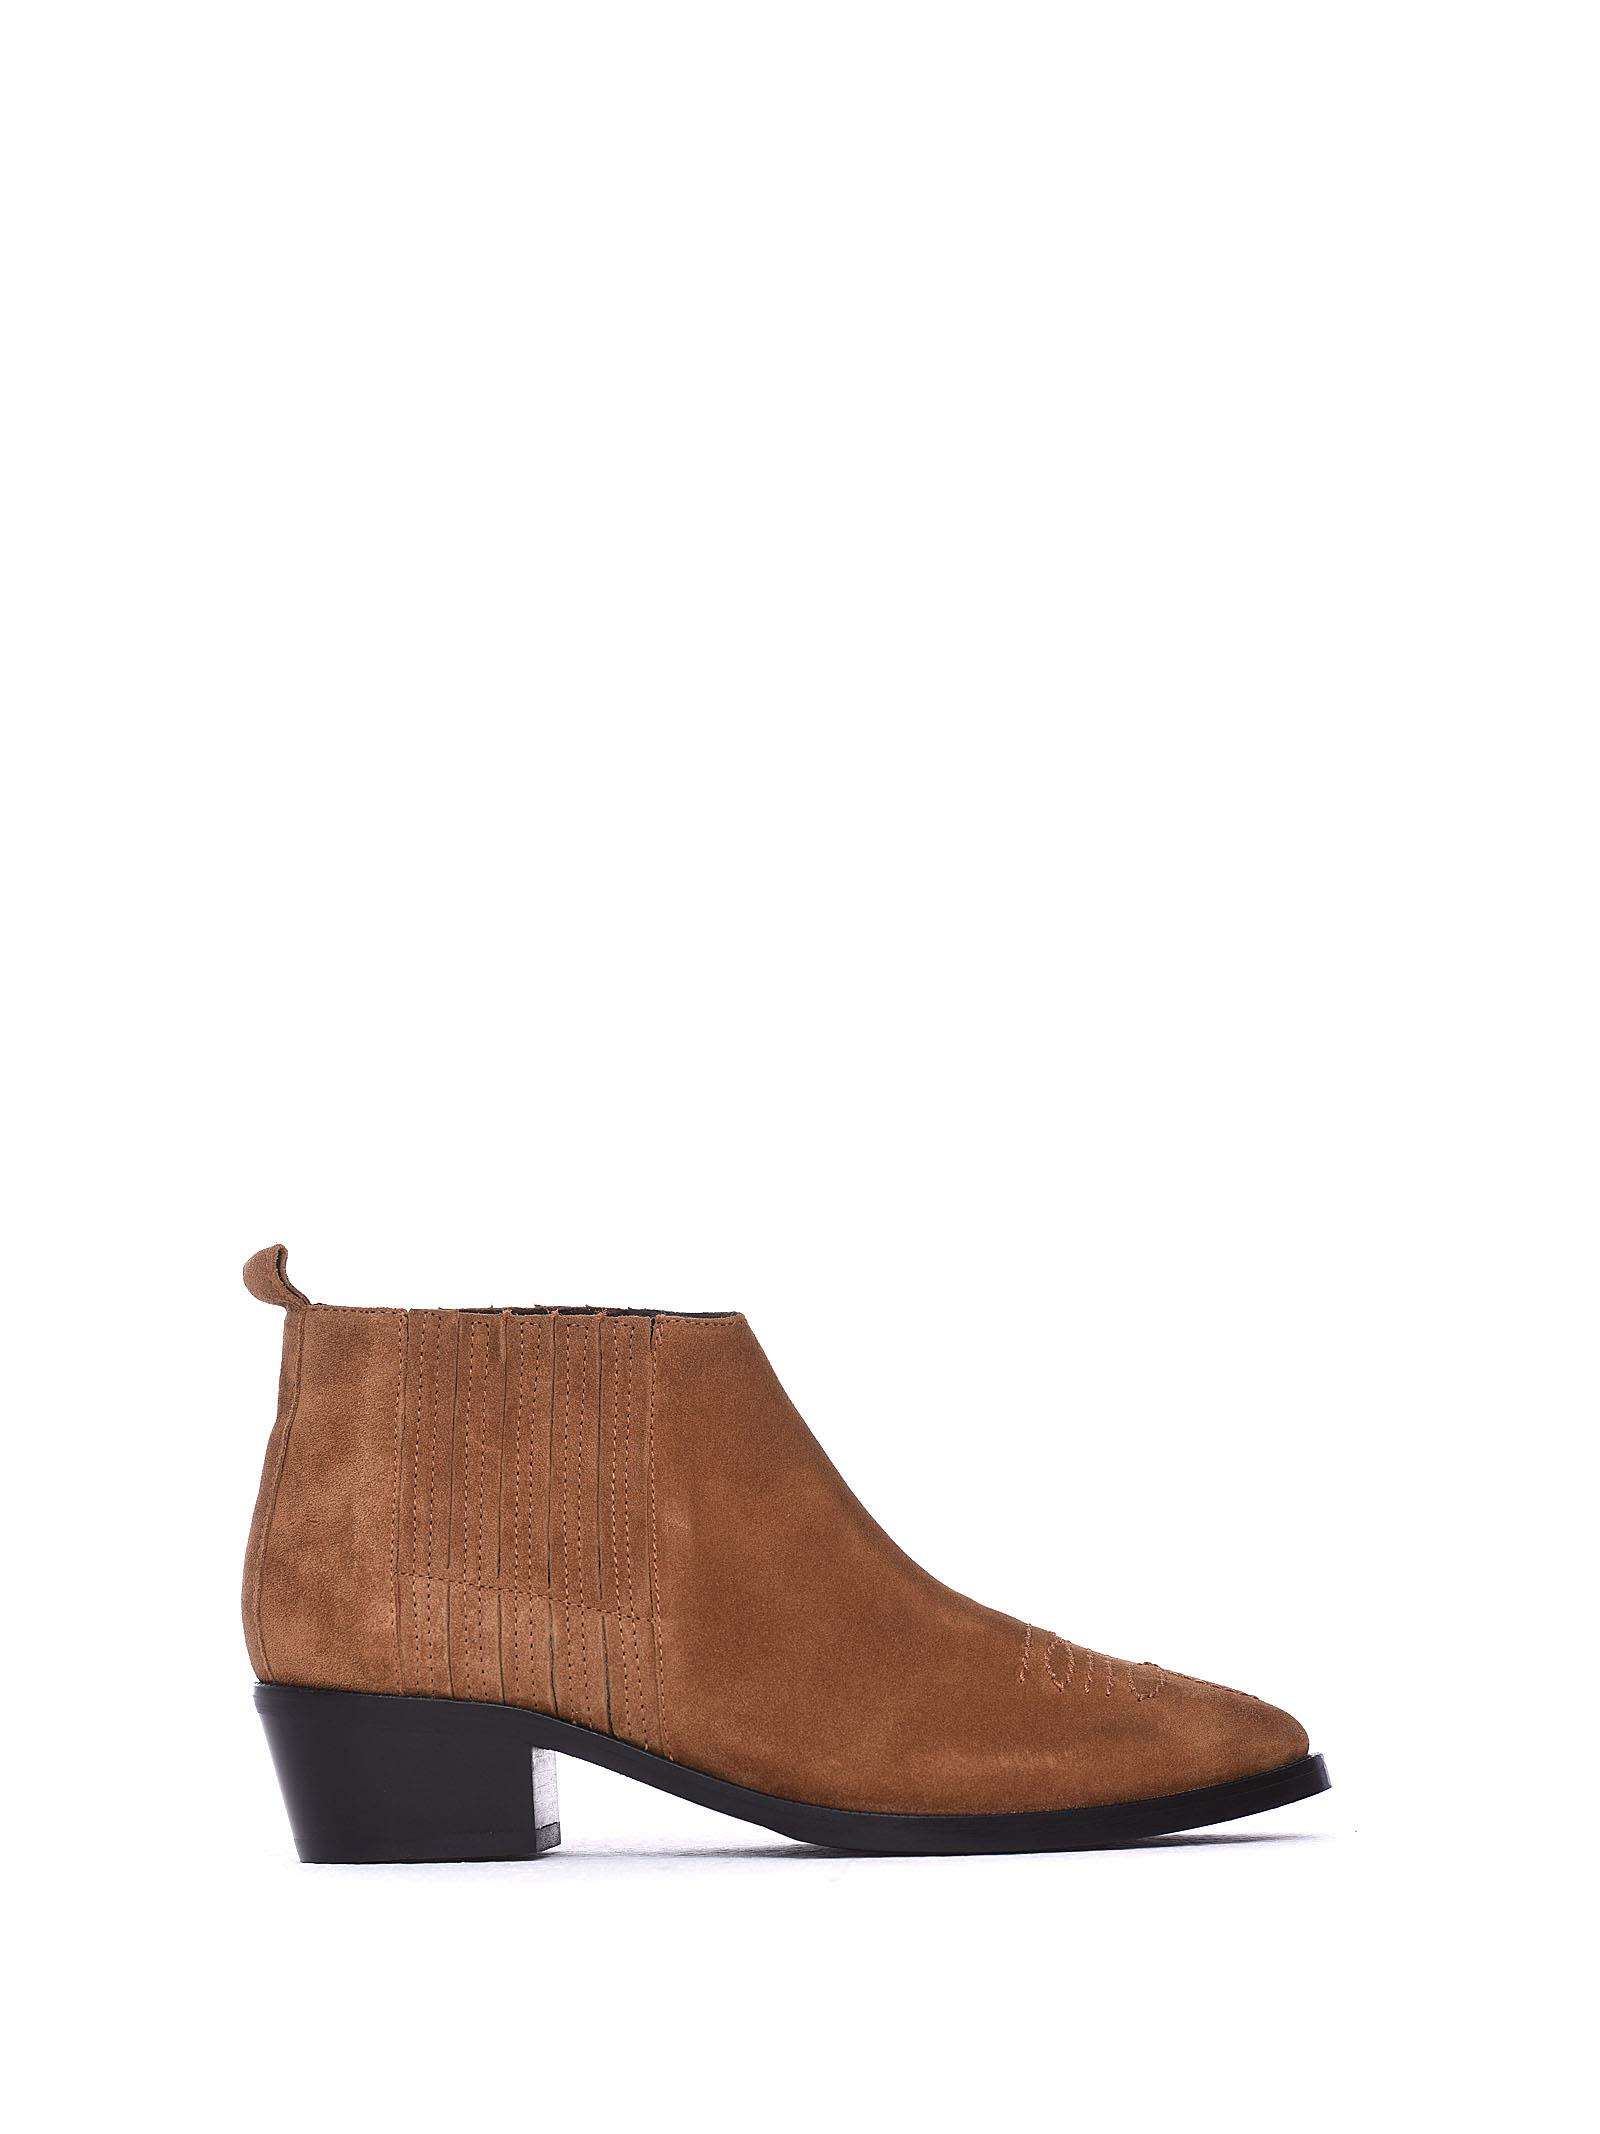 JANET&JANET Brown Ankle Boots in Cuoio